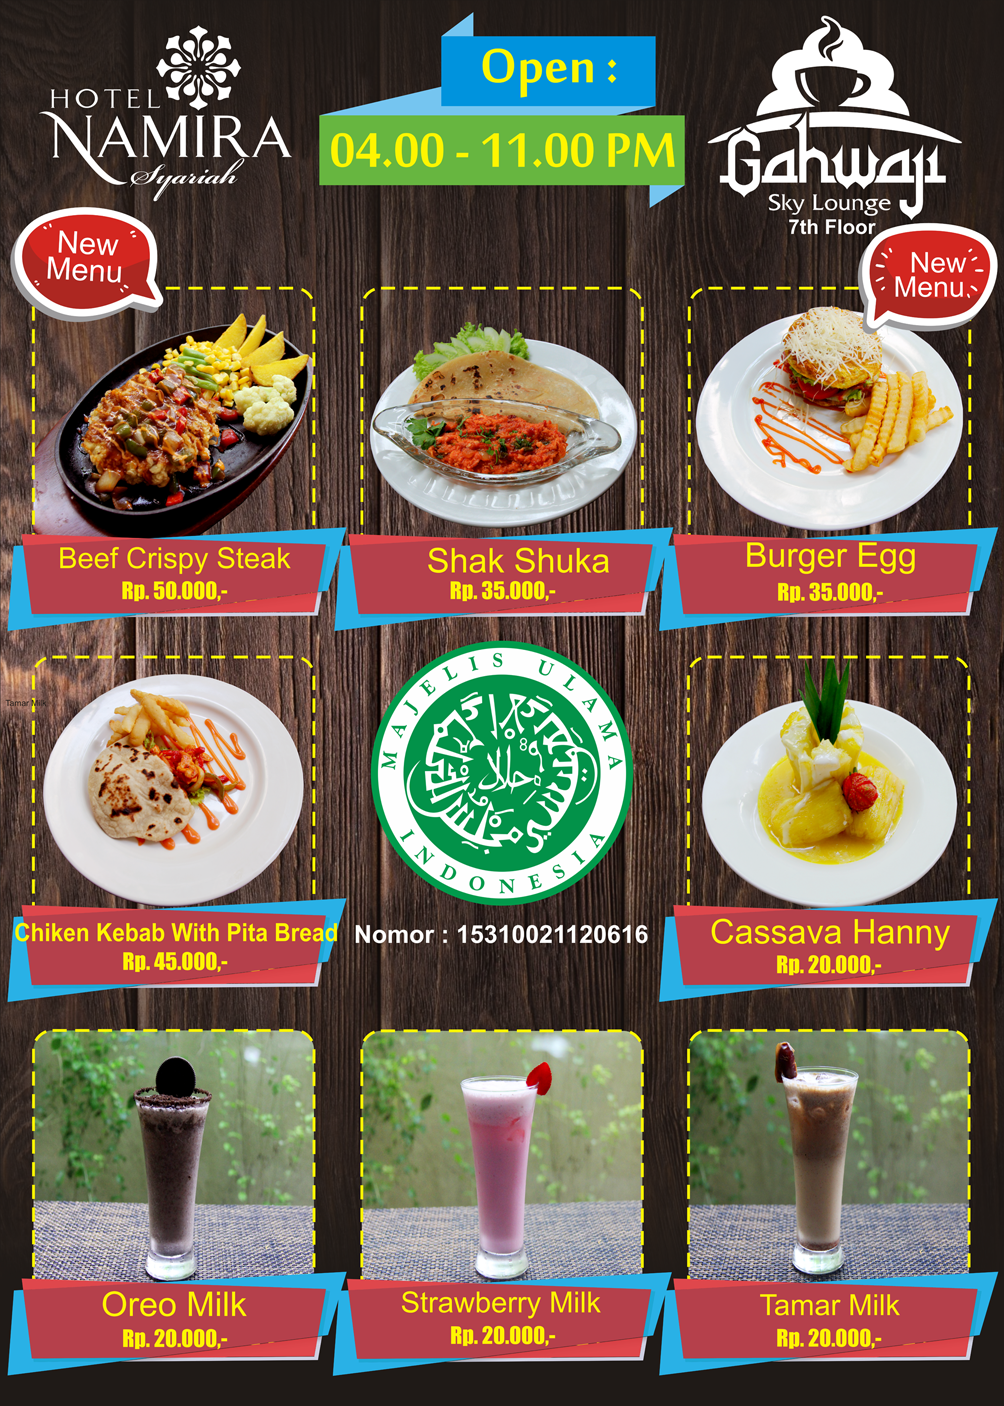 Gahwaji New Menu